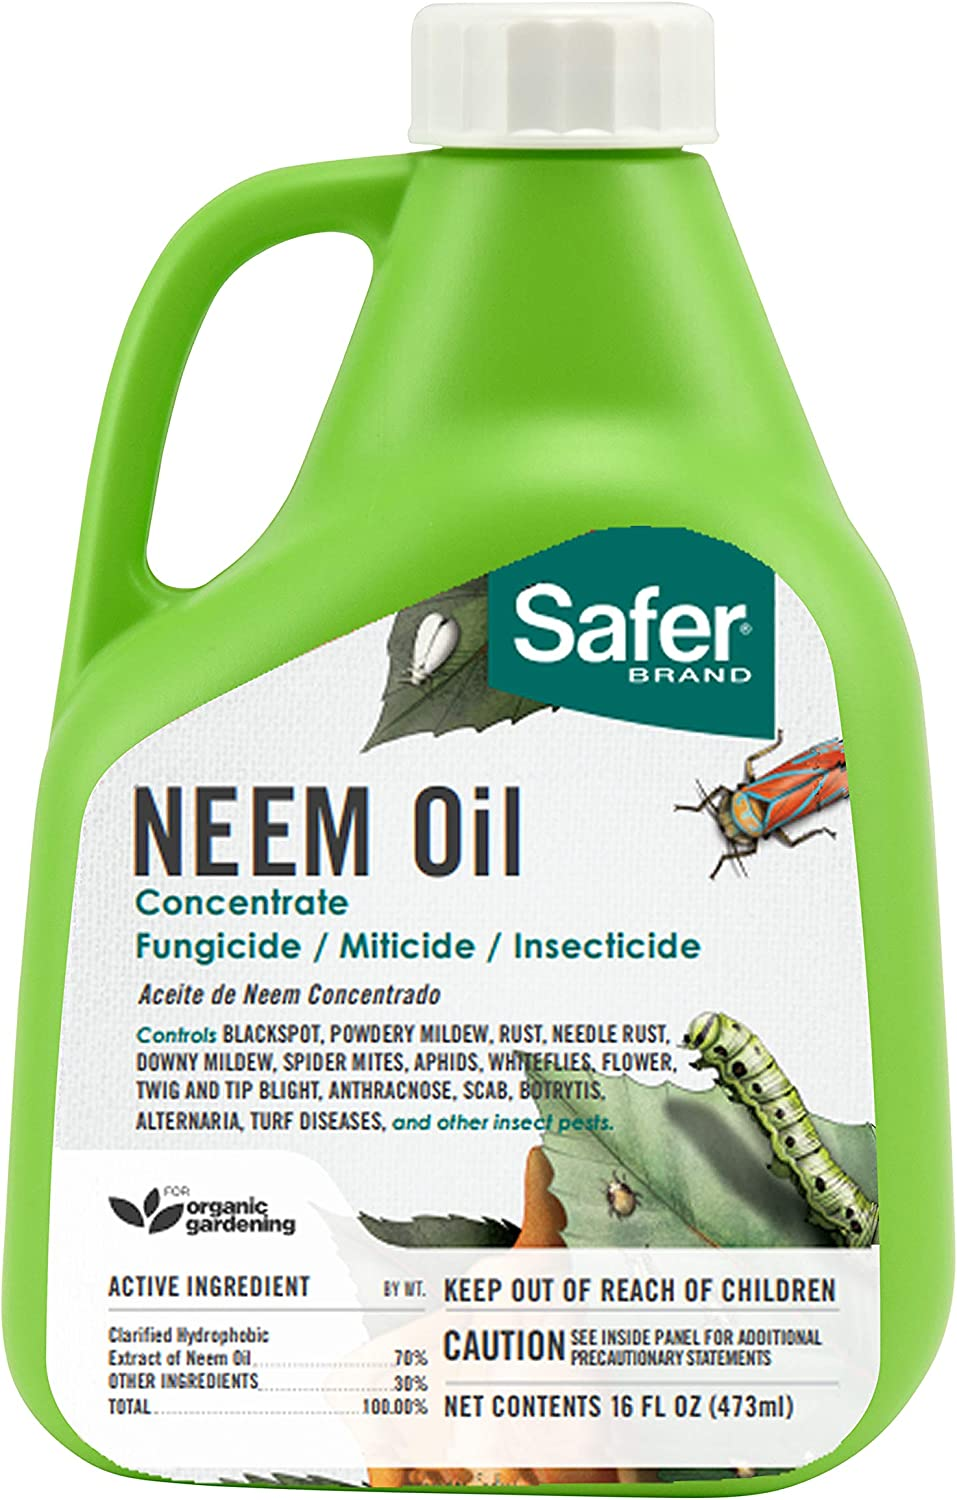 Safer 5182-6 Brand Neem Oil Concentrate,Green